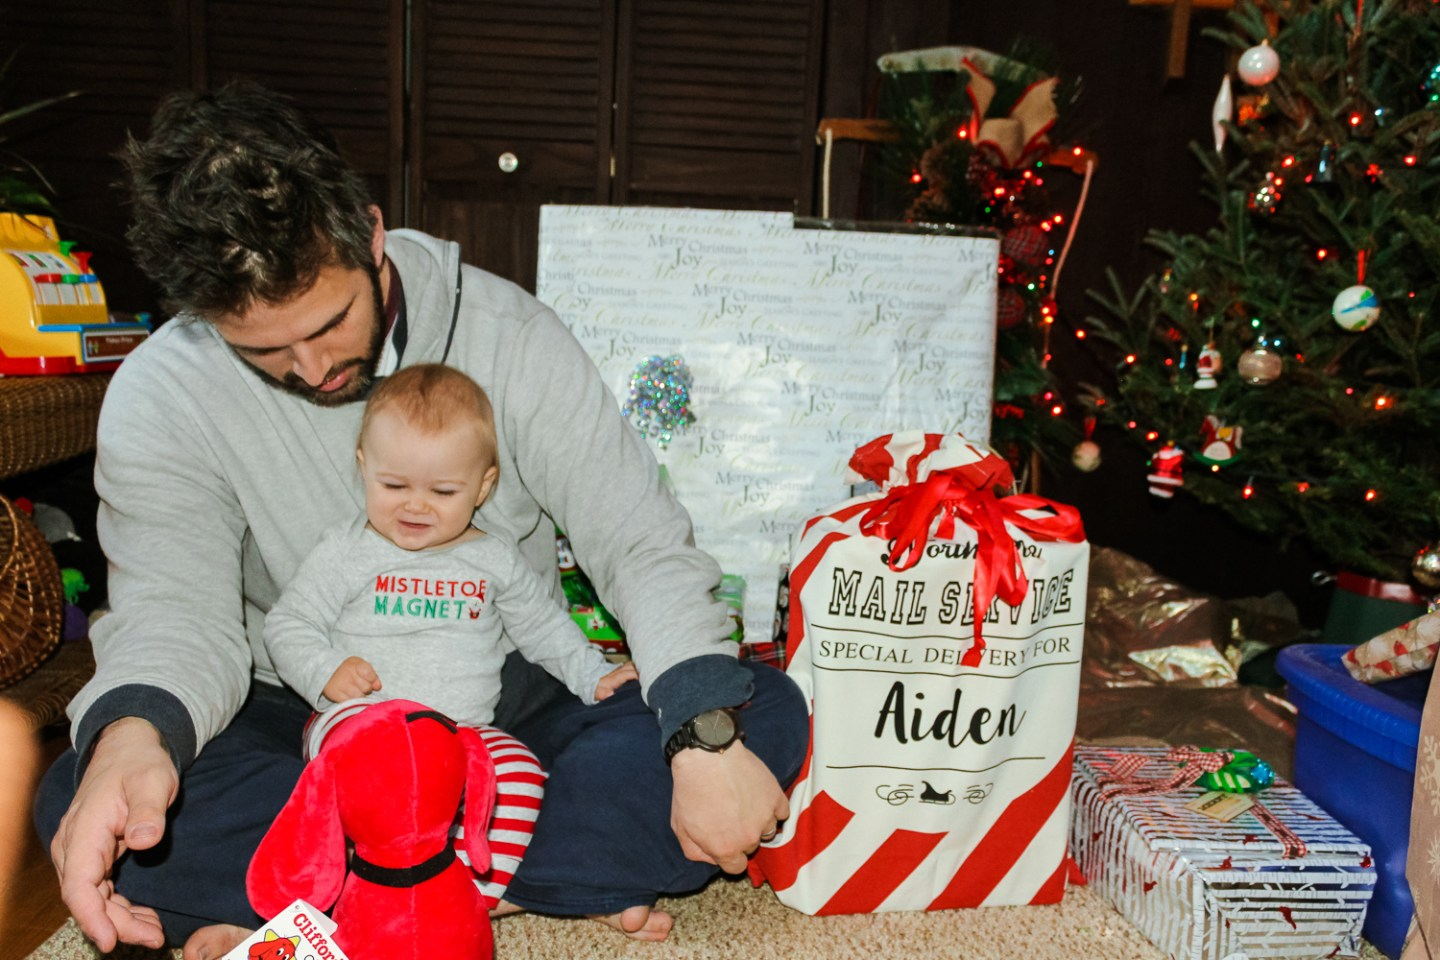 It wasn't so long ago that I had no idea what to get for a one-year-old. Here is a list of the best gift ideas for babies 9-12 months. - Gift Ideas for Babies 9-12 Months by popular DC mommy blogger Baby Castan on Board